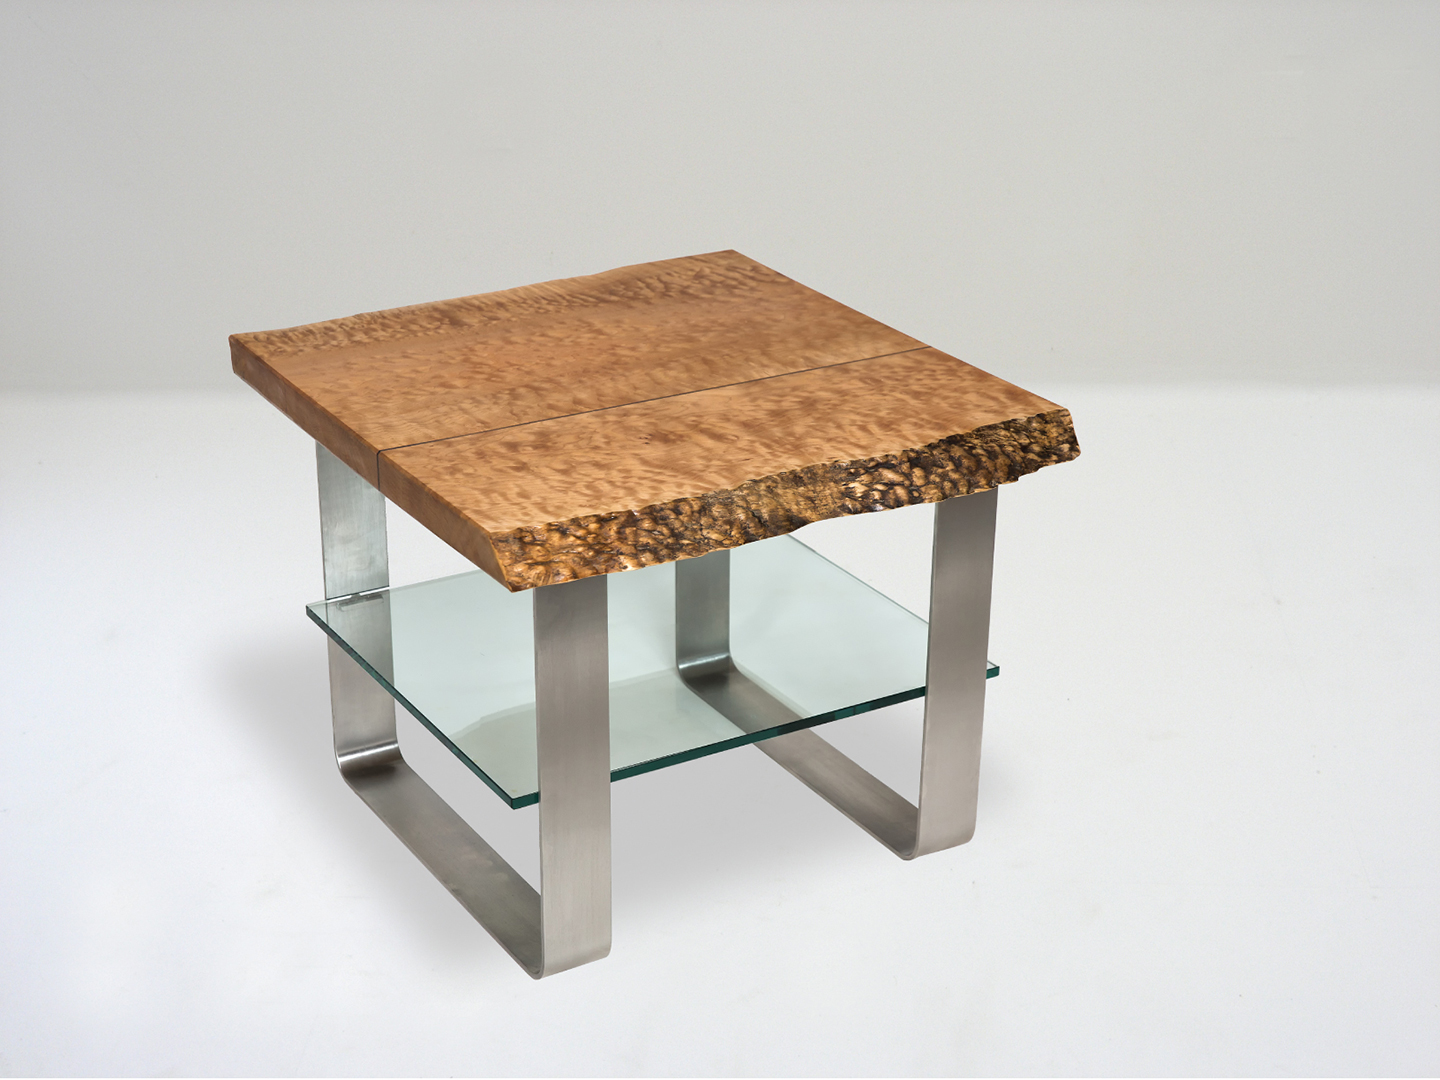 ... Coffee Table - MapleArt: Custom Wood Furniture, Vancouver, BC